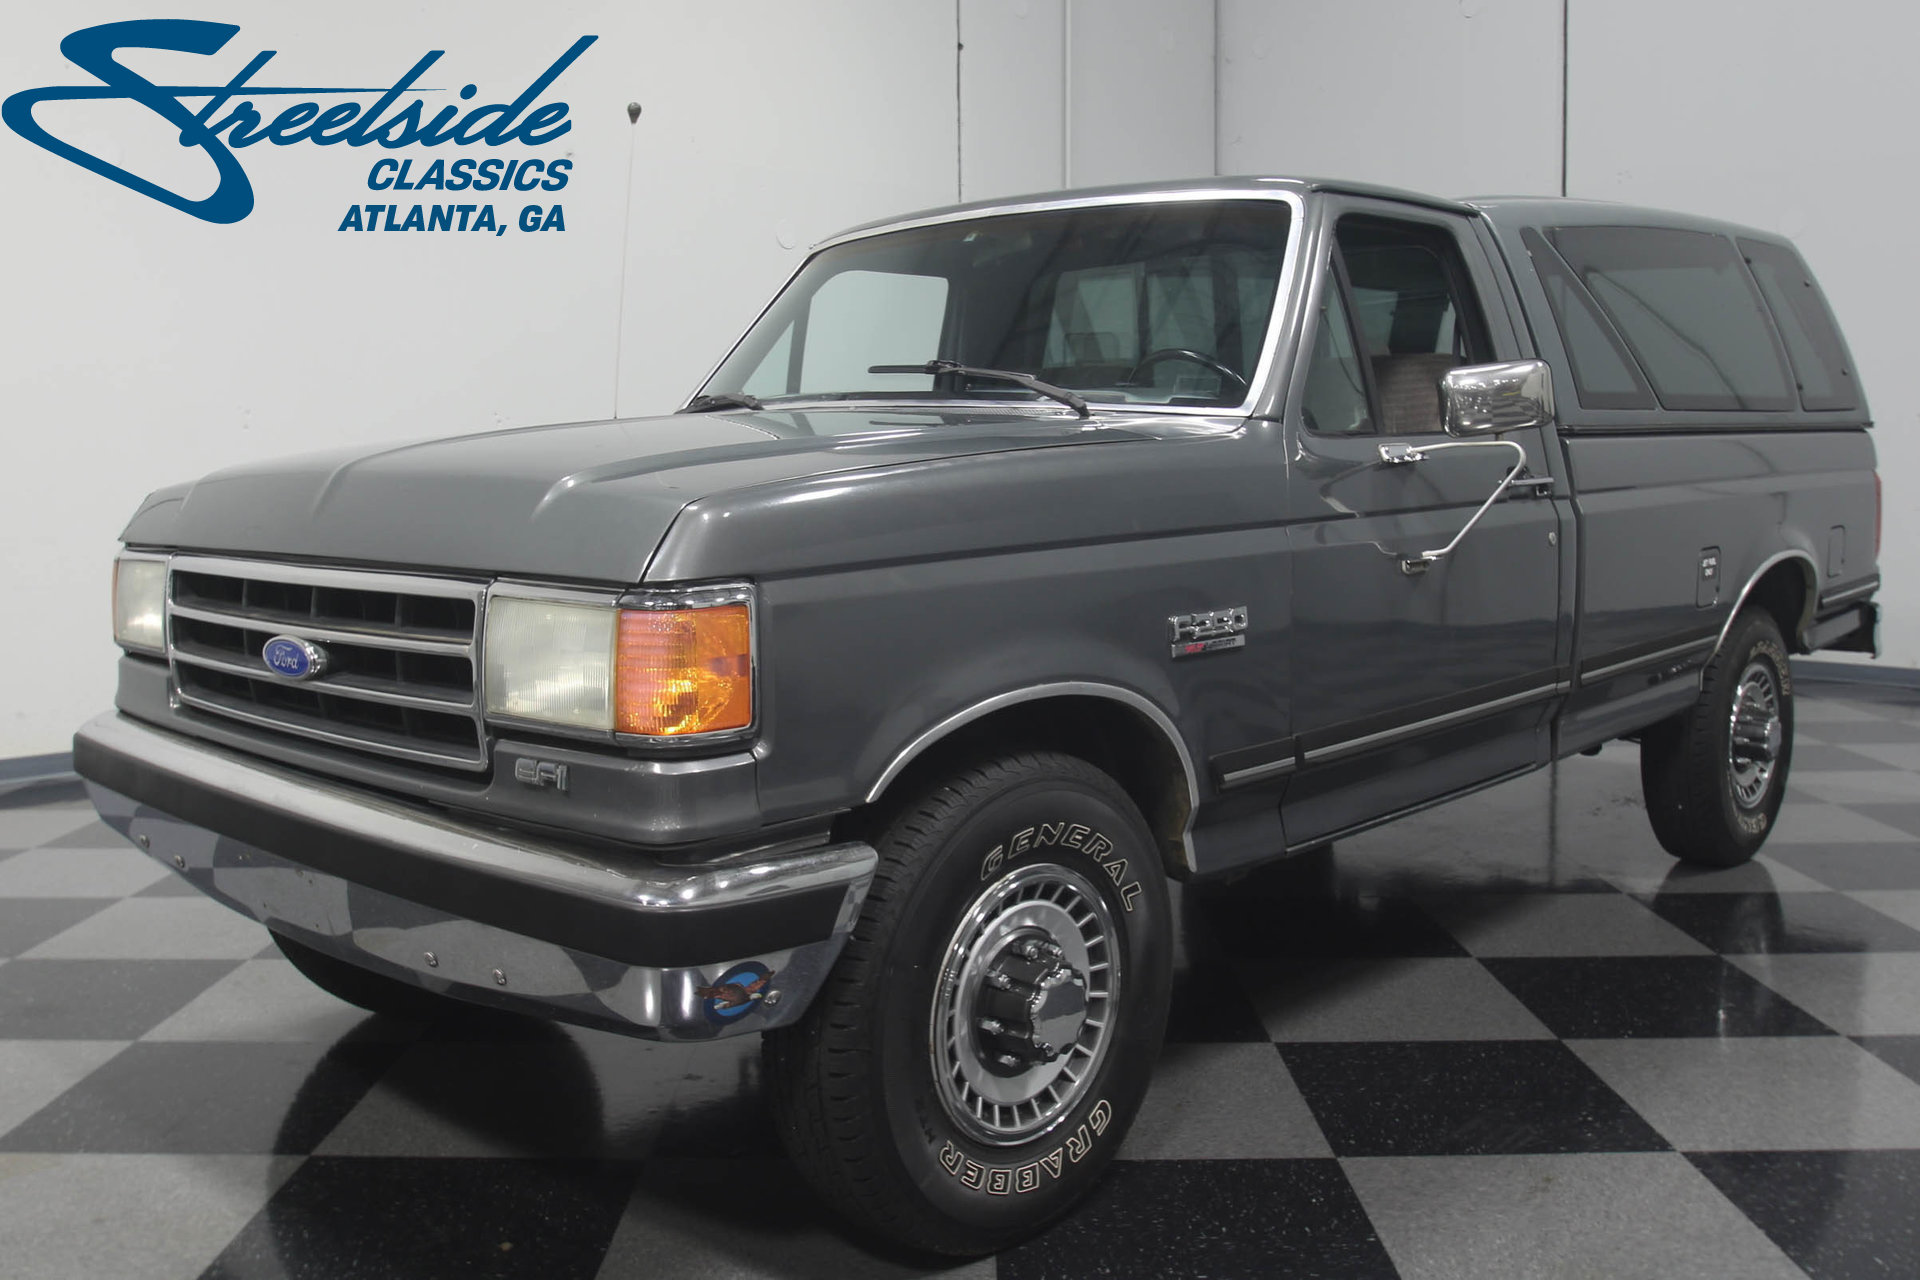 1990 ford f 250 streetside classics the nation 39 s trusted classic car consignment dealer. Black Bedroom Furniture Sets. Home Design Ideas